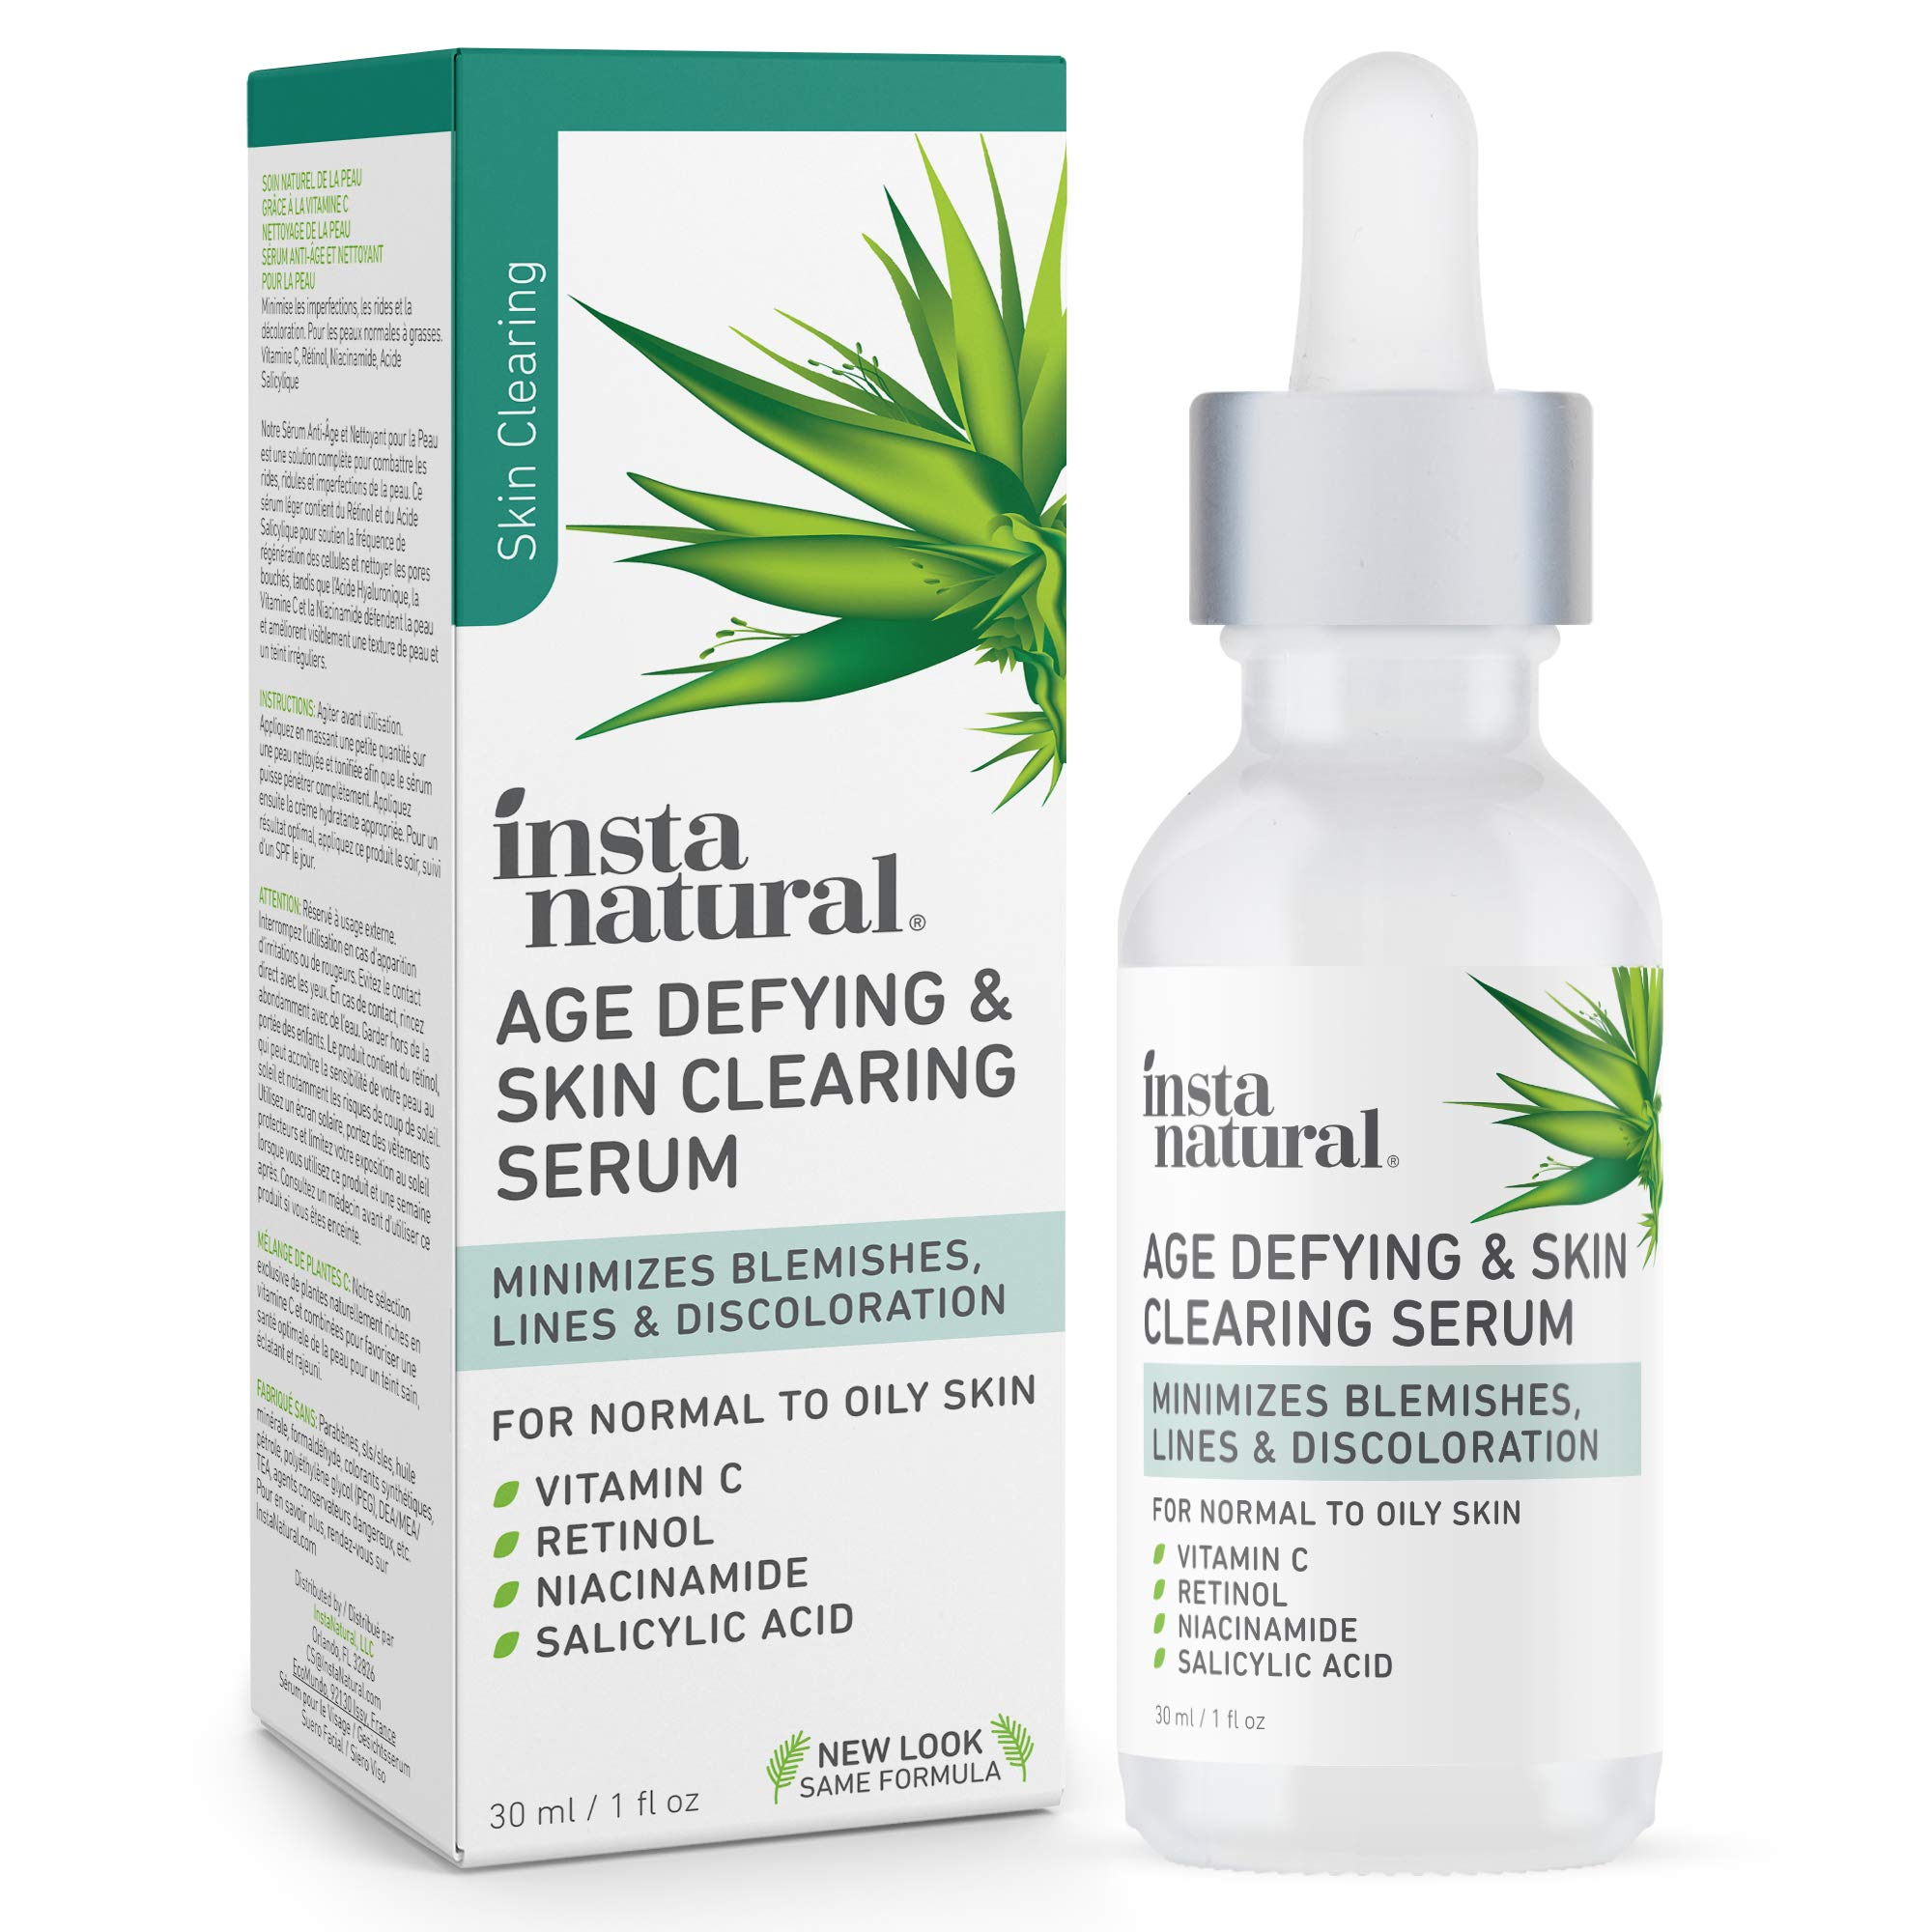 InstaNatural Vitamin C Anti Aging Skin Clearing Serum - Wrinkle, Fine Line, Pigmentation, Pore Minimizer & Dark Spot Corrector for Face - Retinol, Hyaluronic, & Salicylic Acid - 1oz